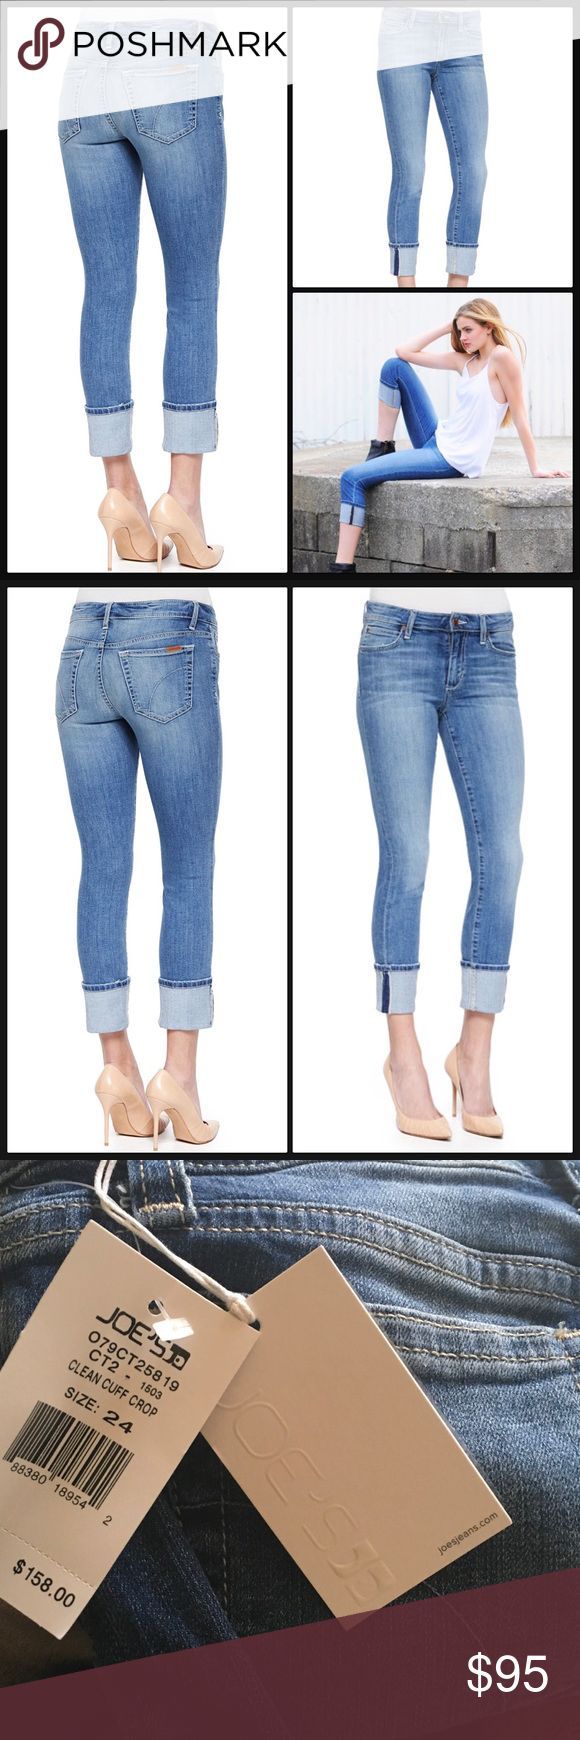 """JOE'S JEANS 👖 Clean Cuff Crop - Catalina NWT Perfect everyday comfort and style; soft lighter weight stretch!  Great fit.  Approx. measurements: 8"""" rise, 24"""" inseam, 31"""" outsea; 12"""" leg opening. Five-pocket style. Allover fading and whiskering. Low rise. Fitted through skinny legs. Wide rolled cuffs. Button/zip fly; belt loops. Cotton/polyester/spandex. Machine wash. Imported. Joe's Jeans Jeans Ankle & Cropped"""